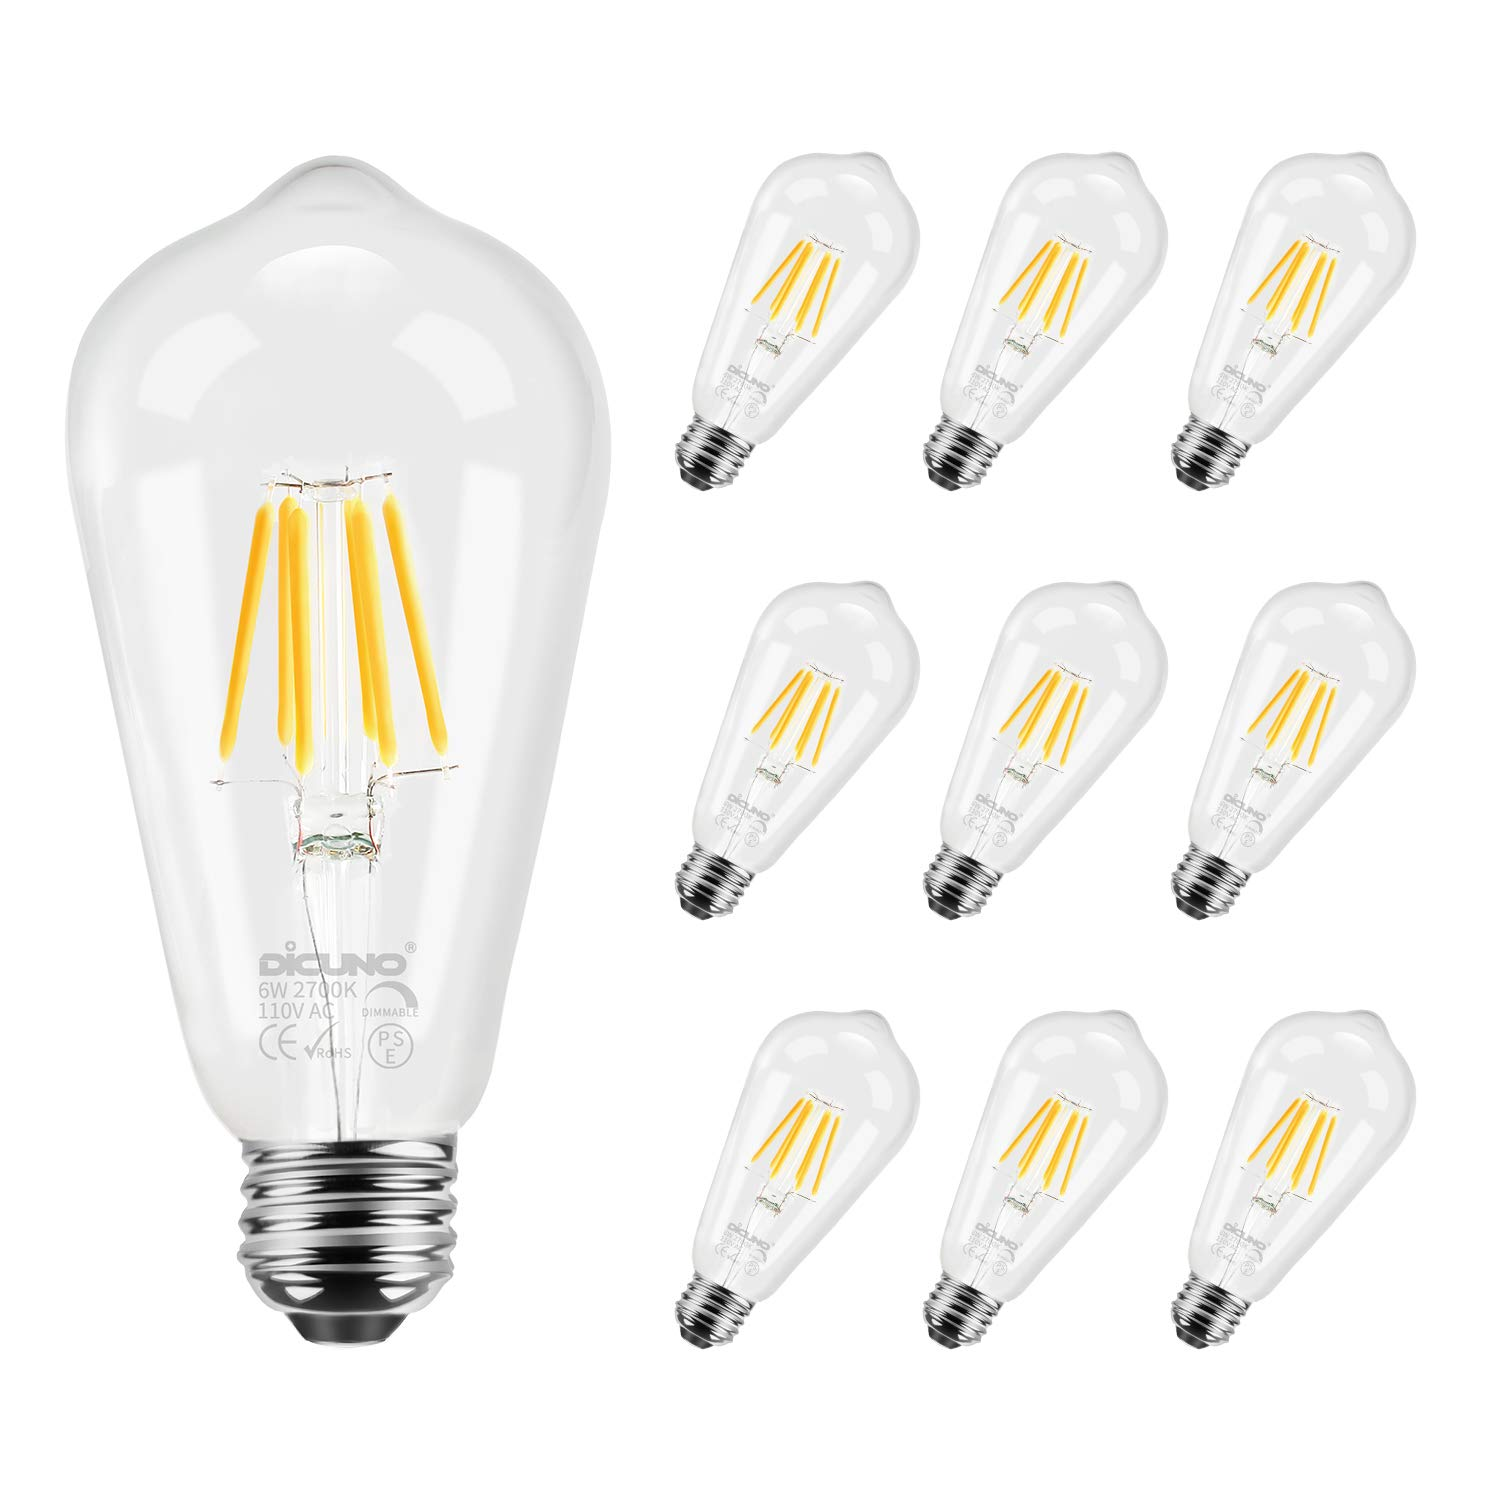 DiCUNO Edison Bulb Medium E26 Standard Base Dimmable ST64 6W 60W Equivalent 4500K Daylight White Vintage LED Light Bulb Pack of 6